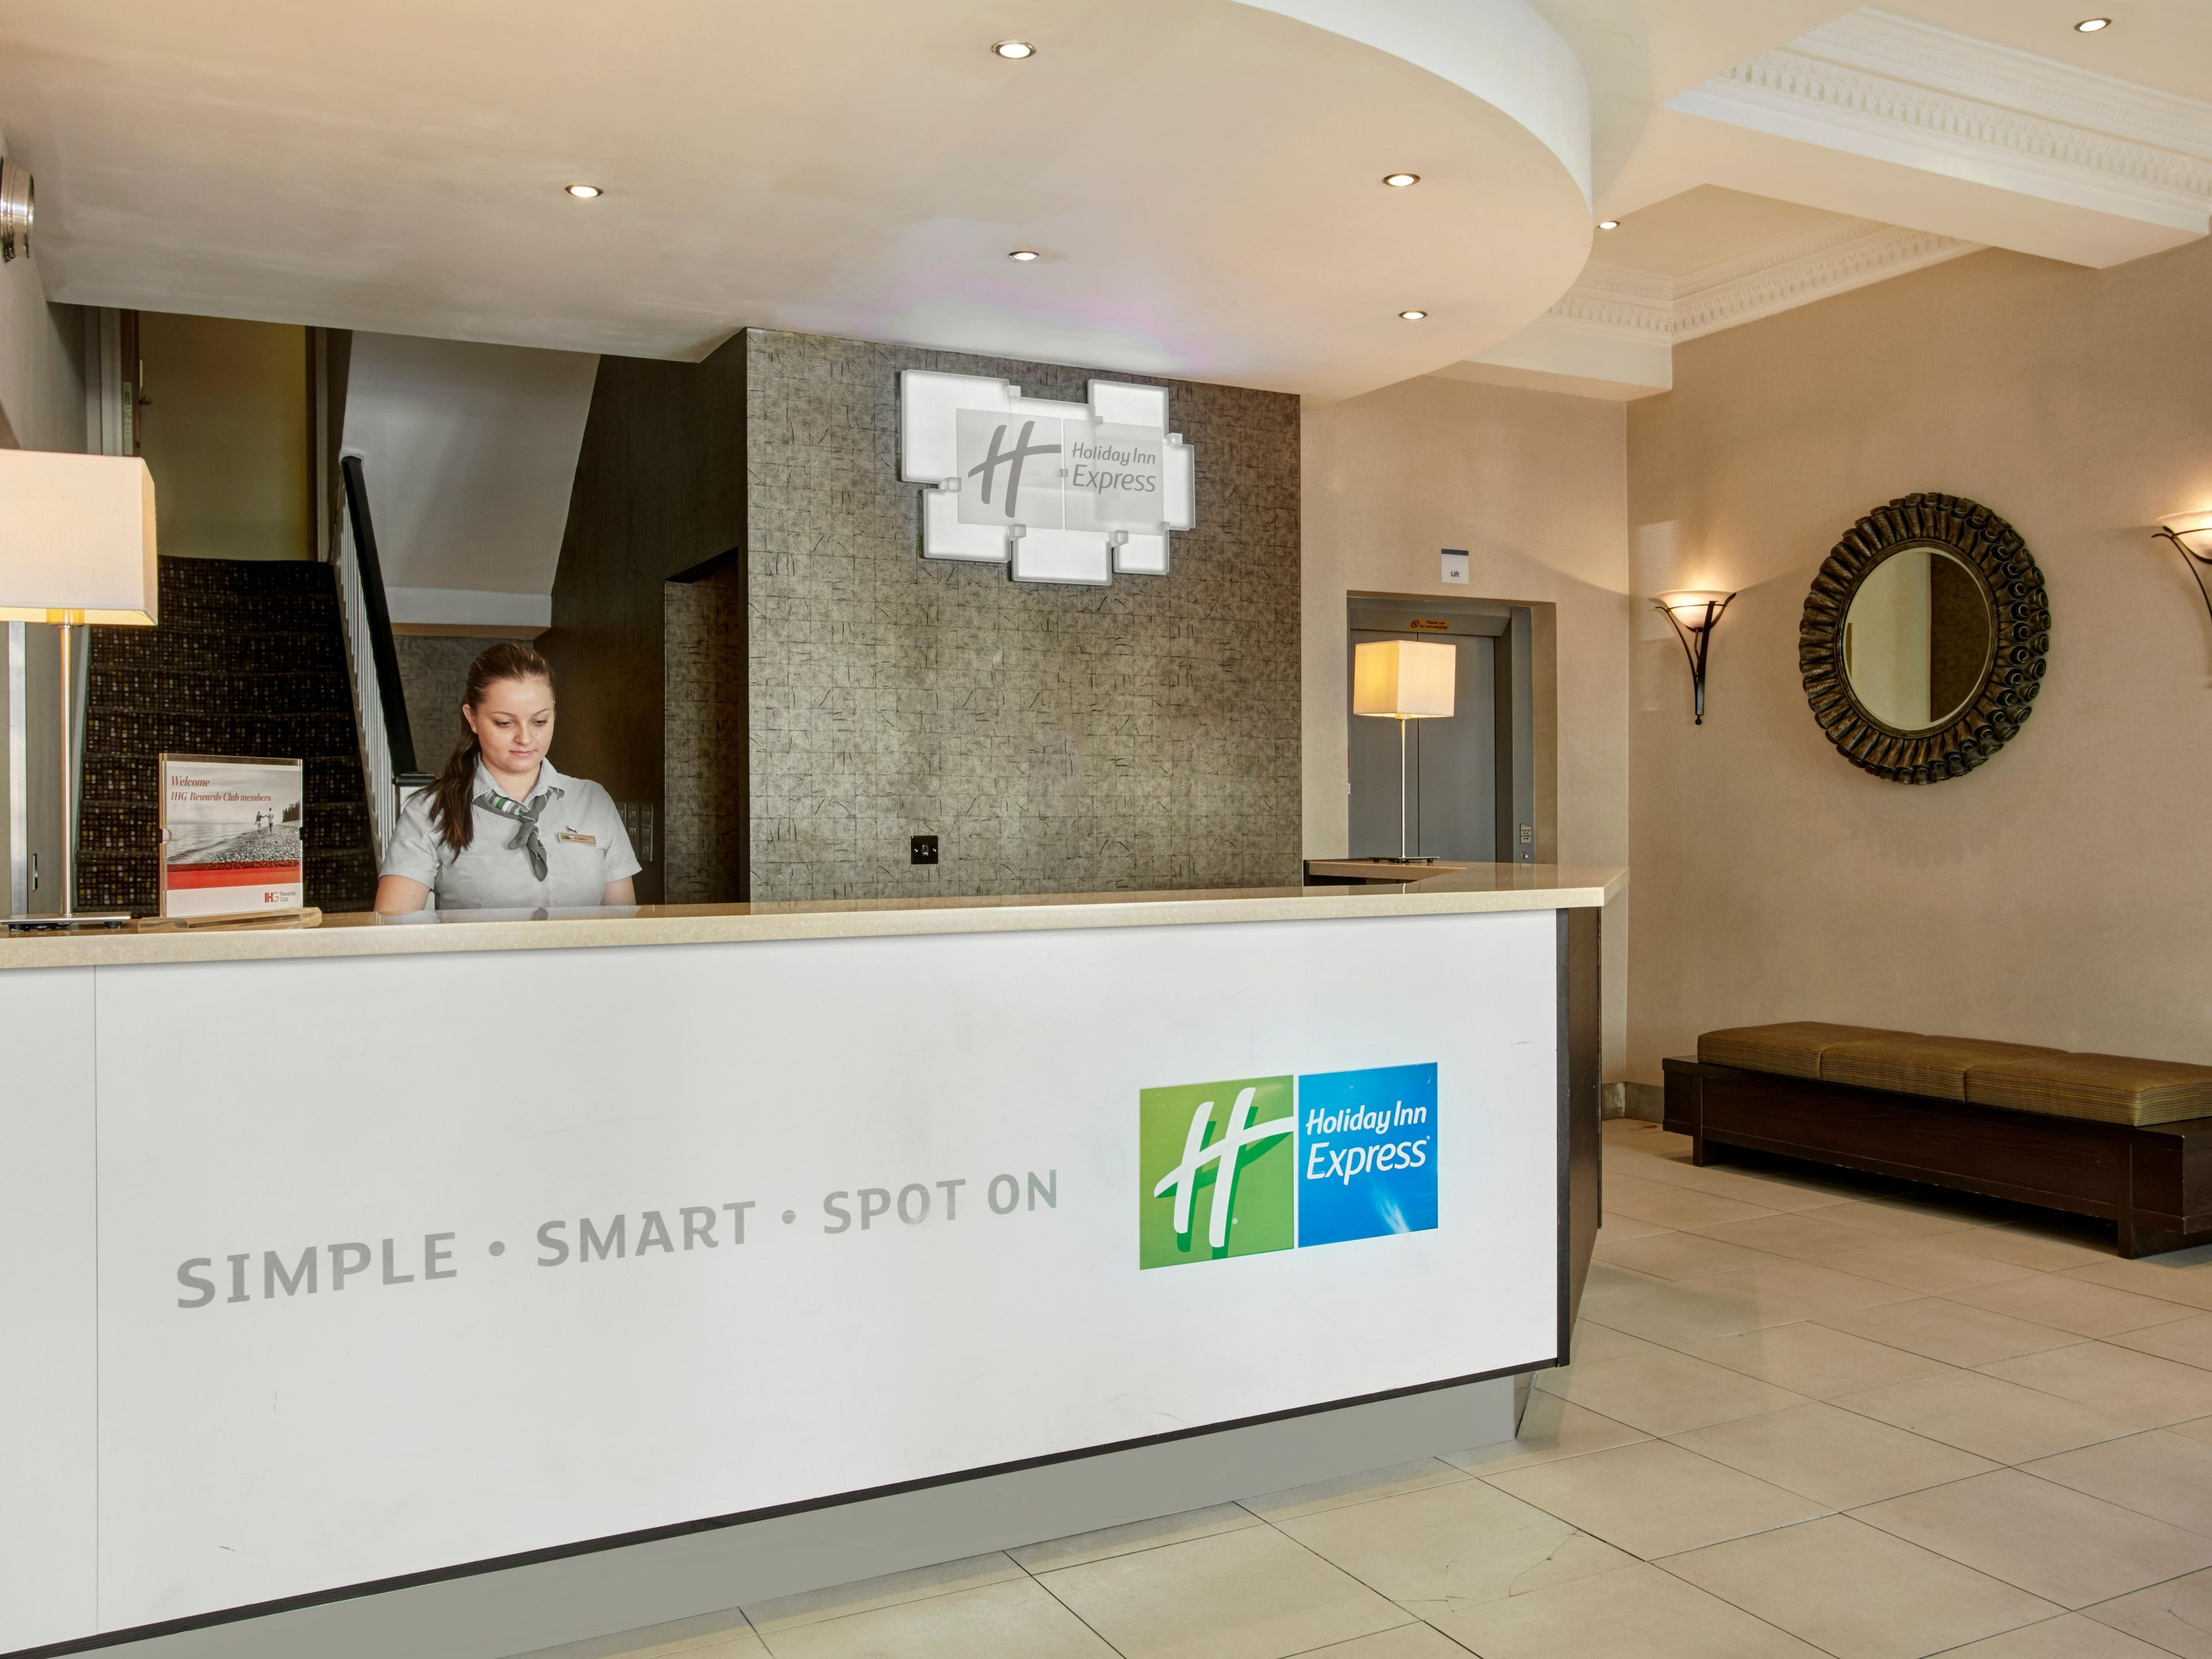 Welcome to Holiday Inn Express London Victoria